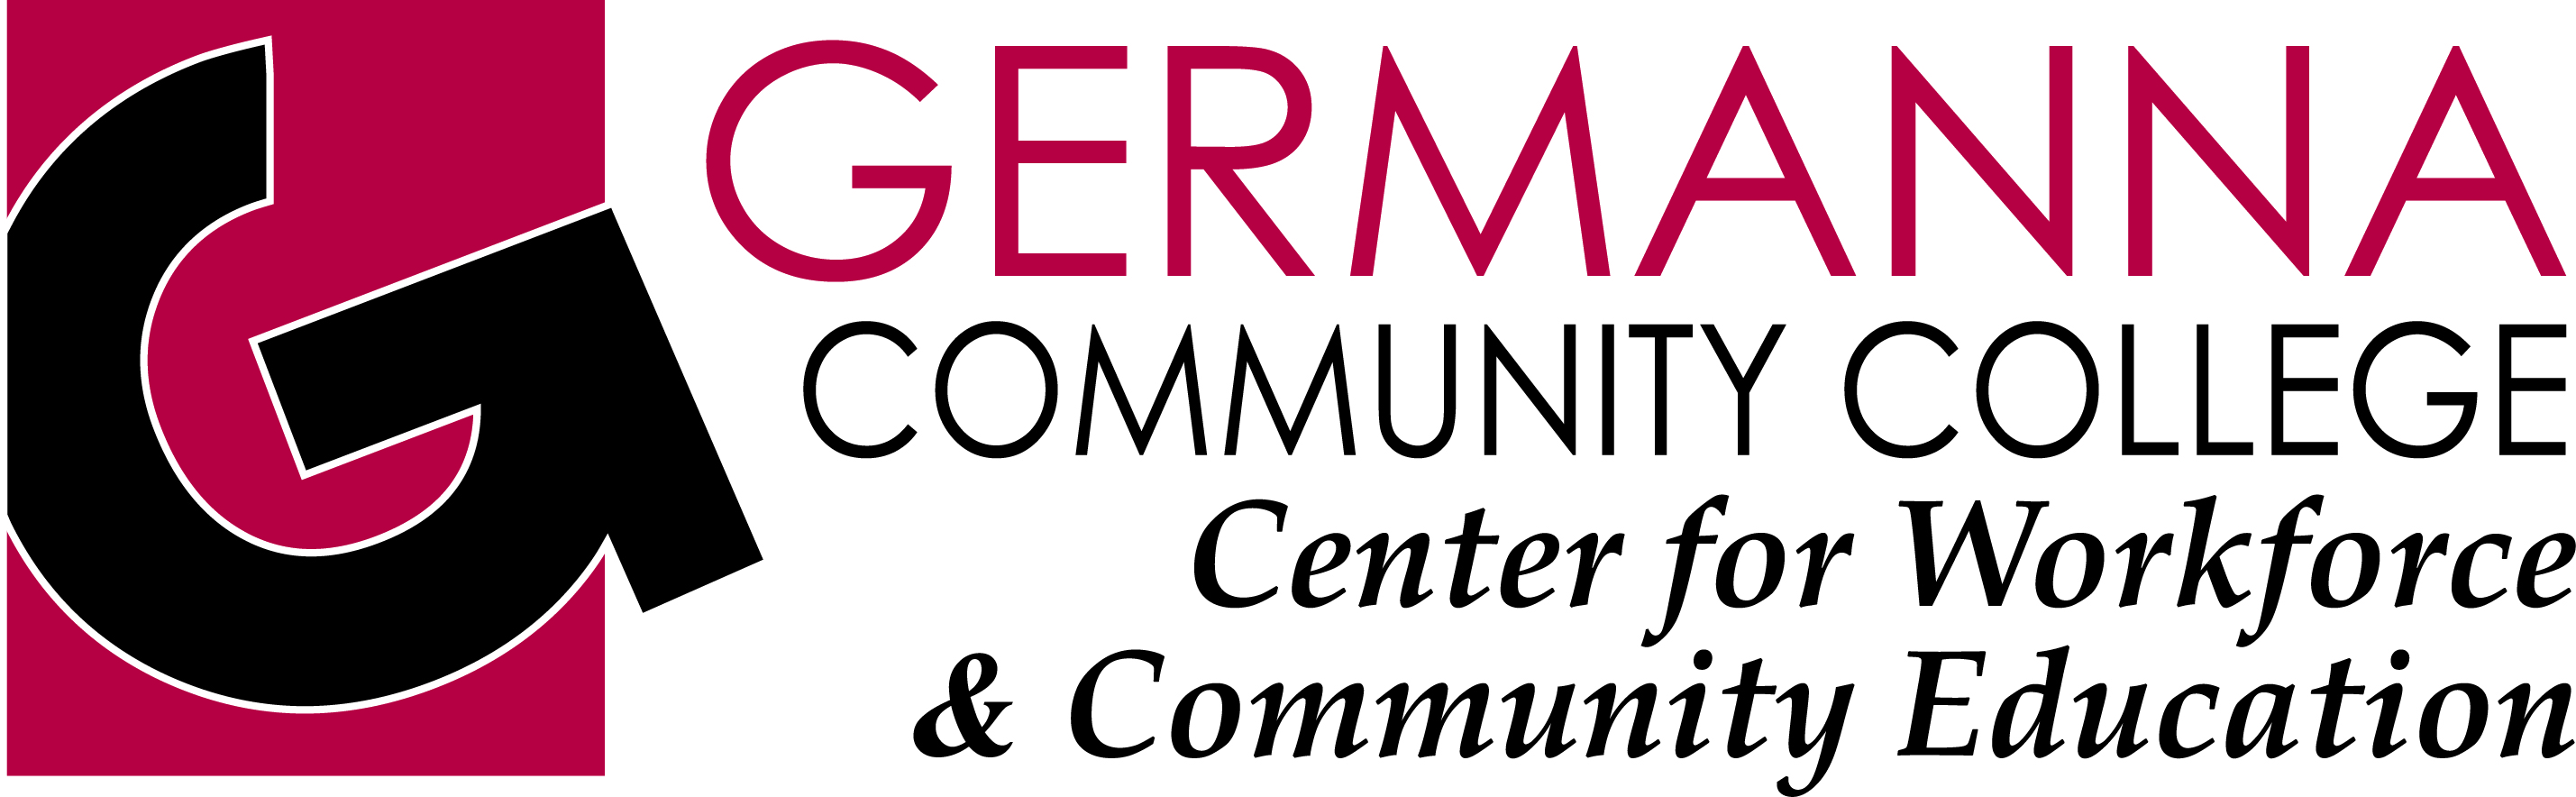 Germanna Workforce Class of the Week – IT Essentials 1: PC/A+ Certification